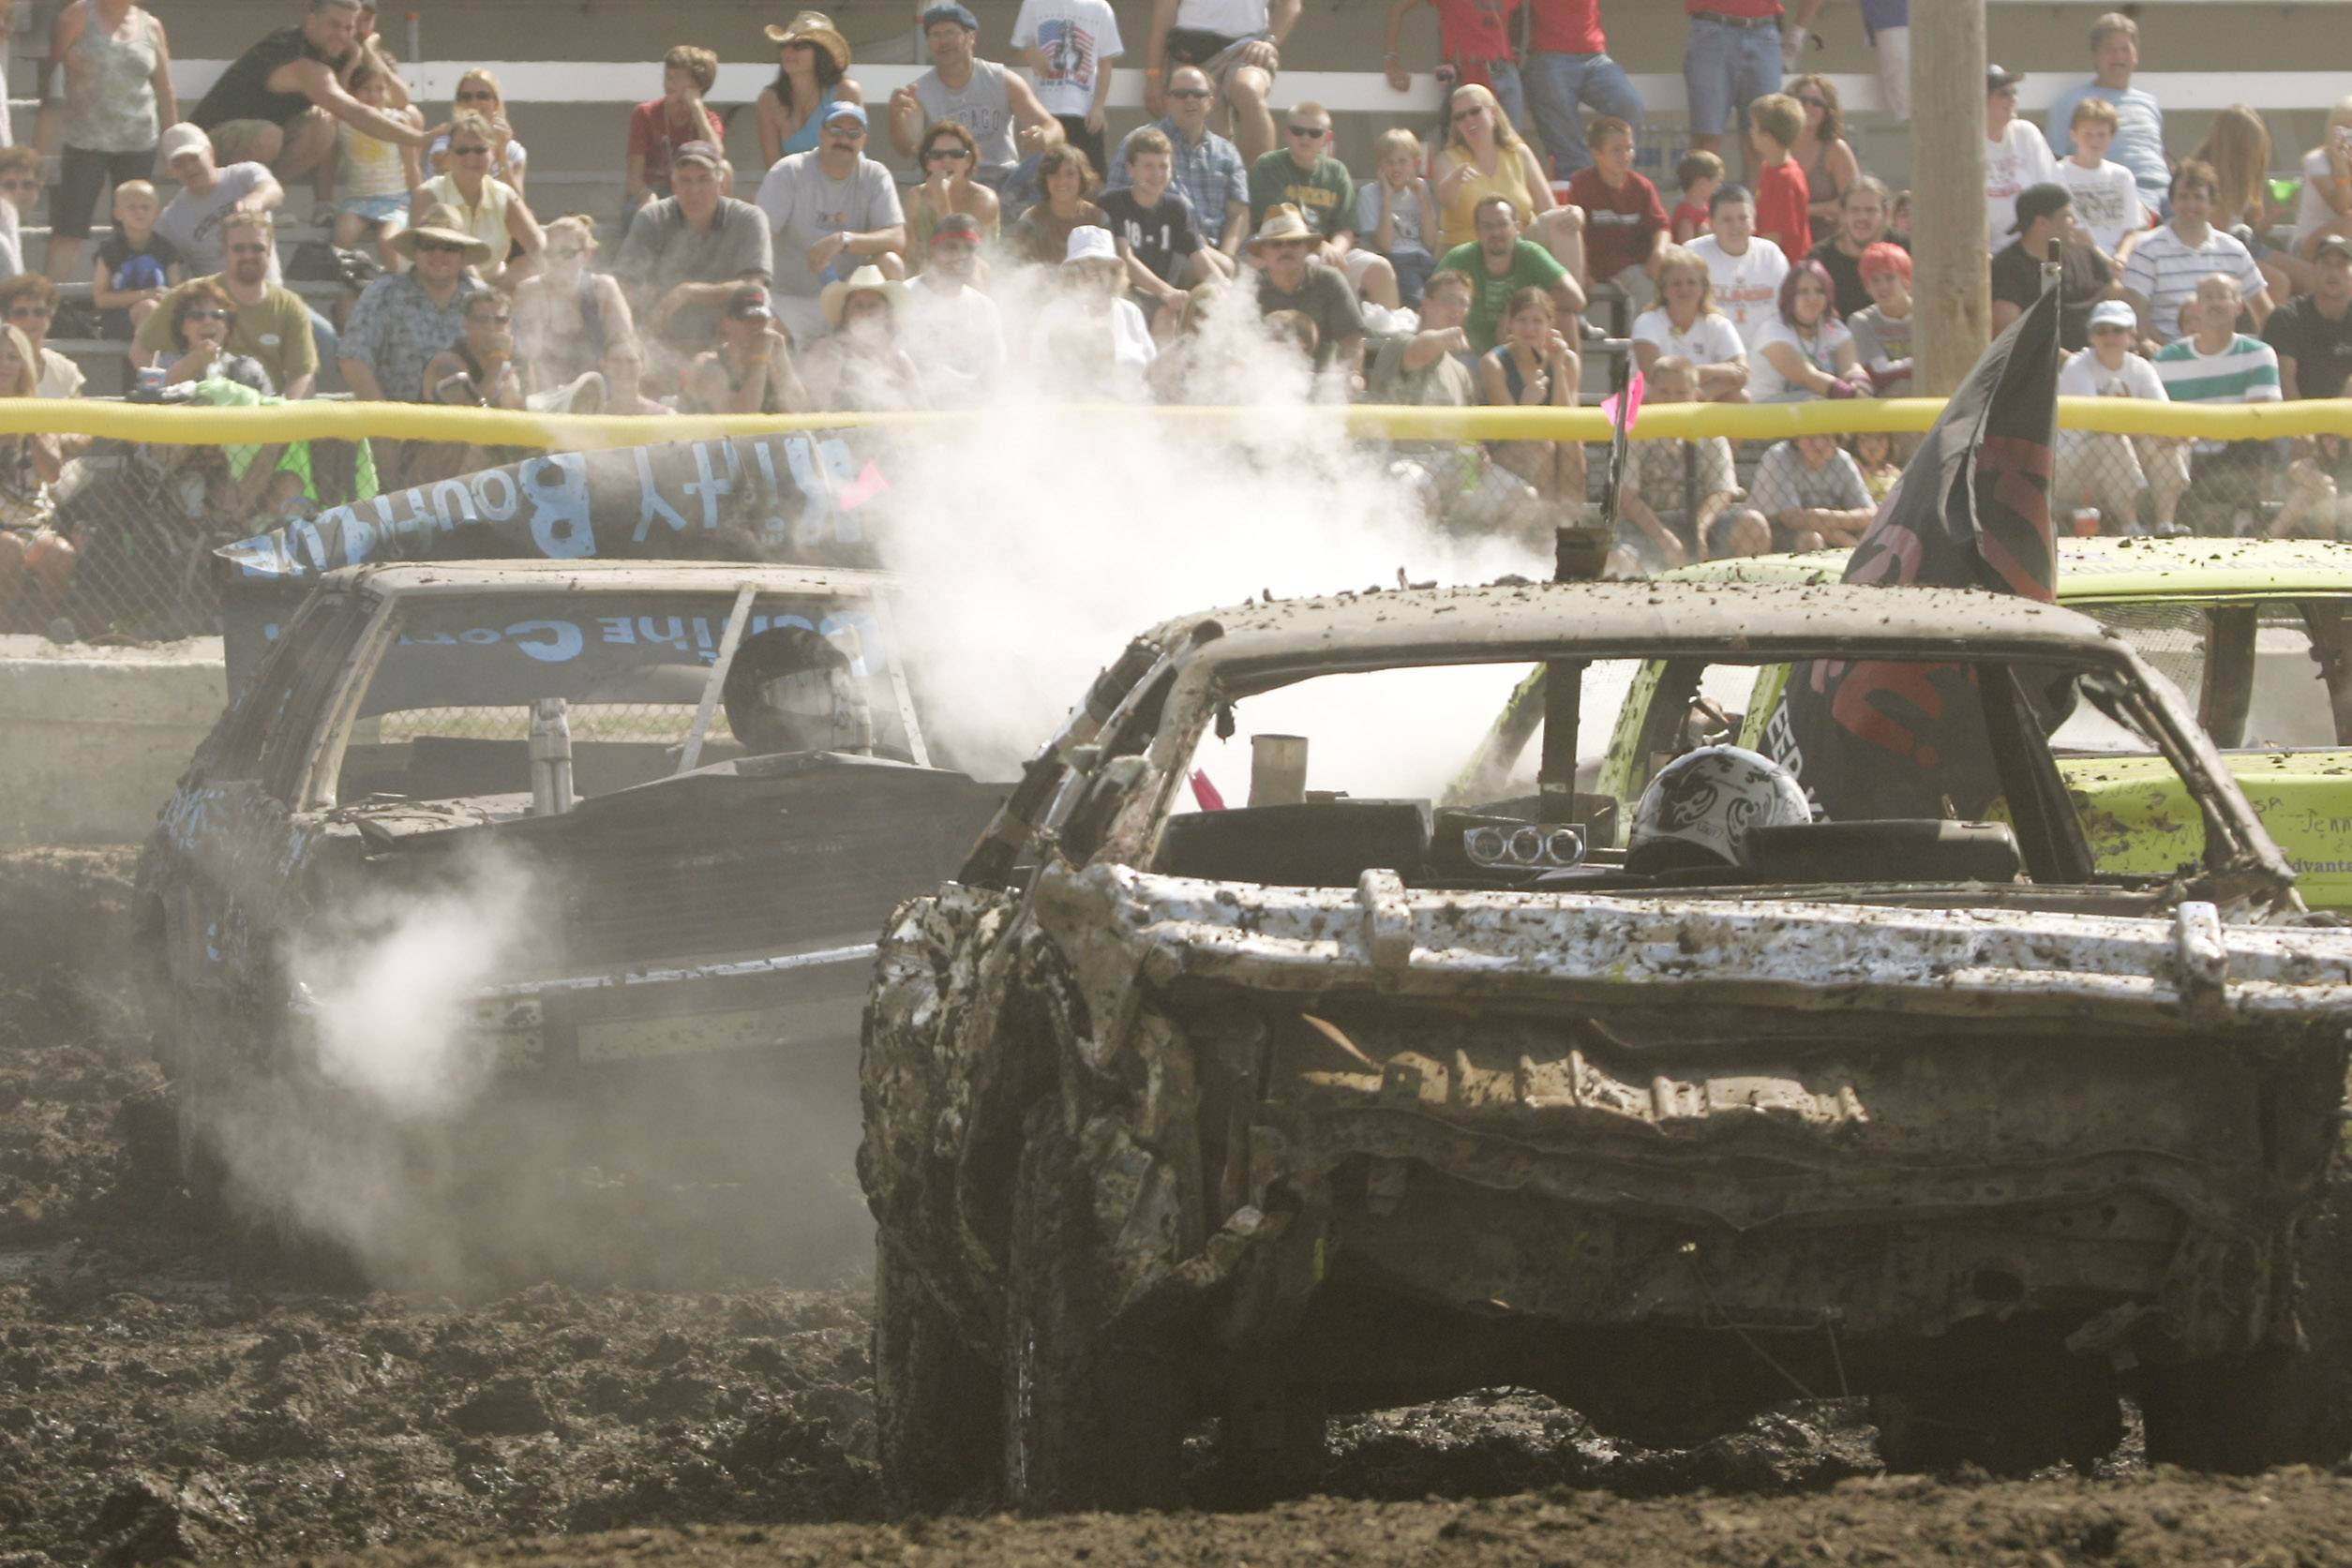 Crashes like the ones shown can be seen at the DuPage County Fair's demolition derby at 1 and 6 p.m. Sunday